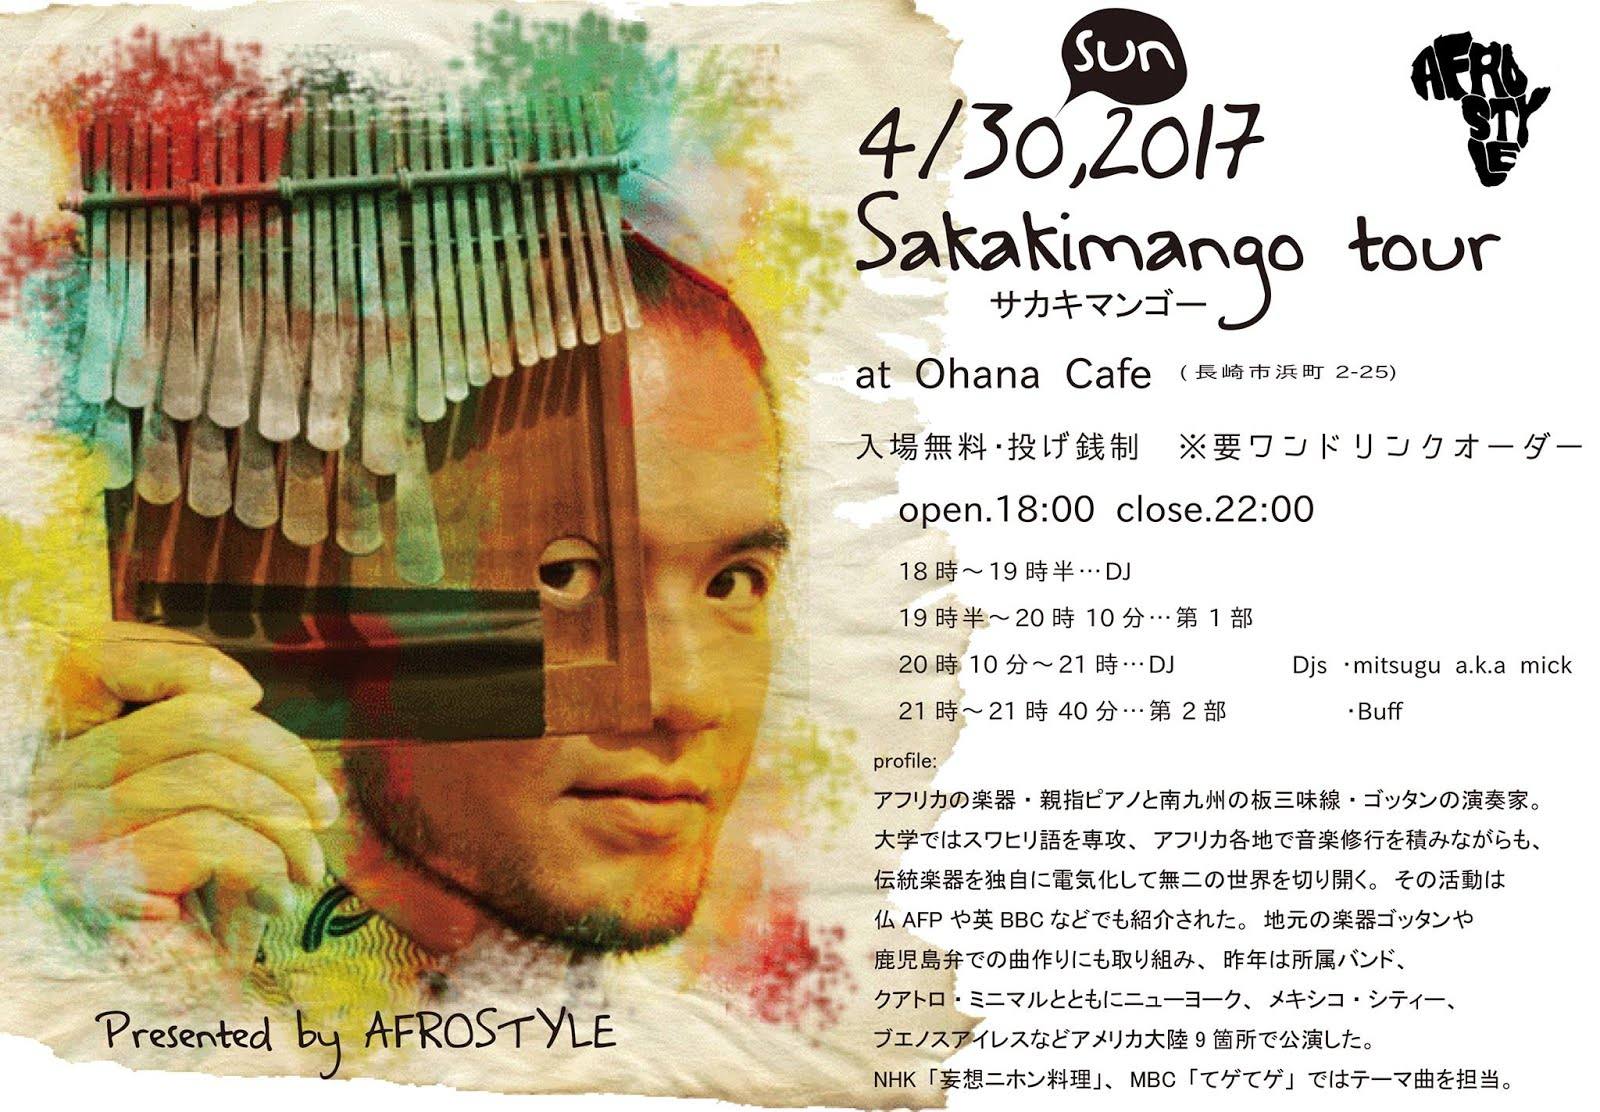 4/30(日)Sakakimango tour at Ohana Cafe